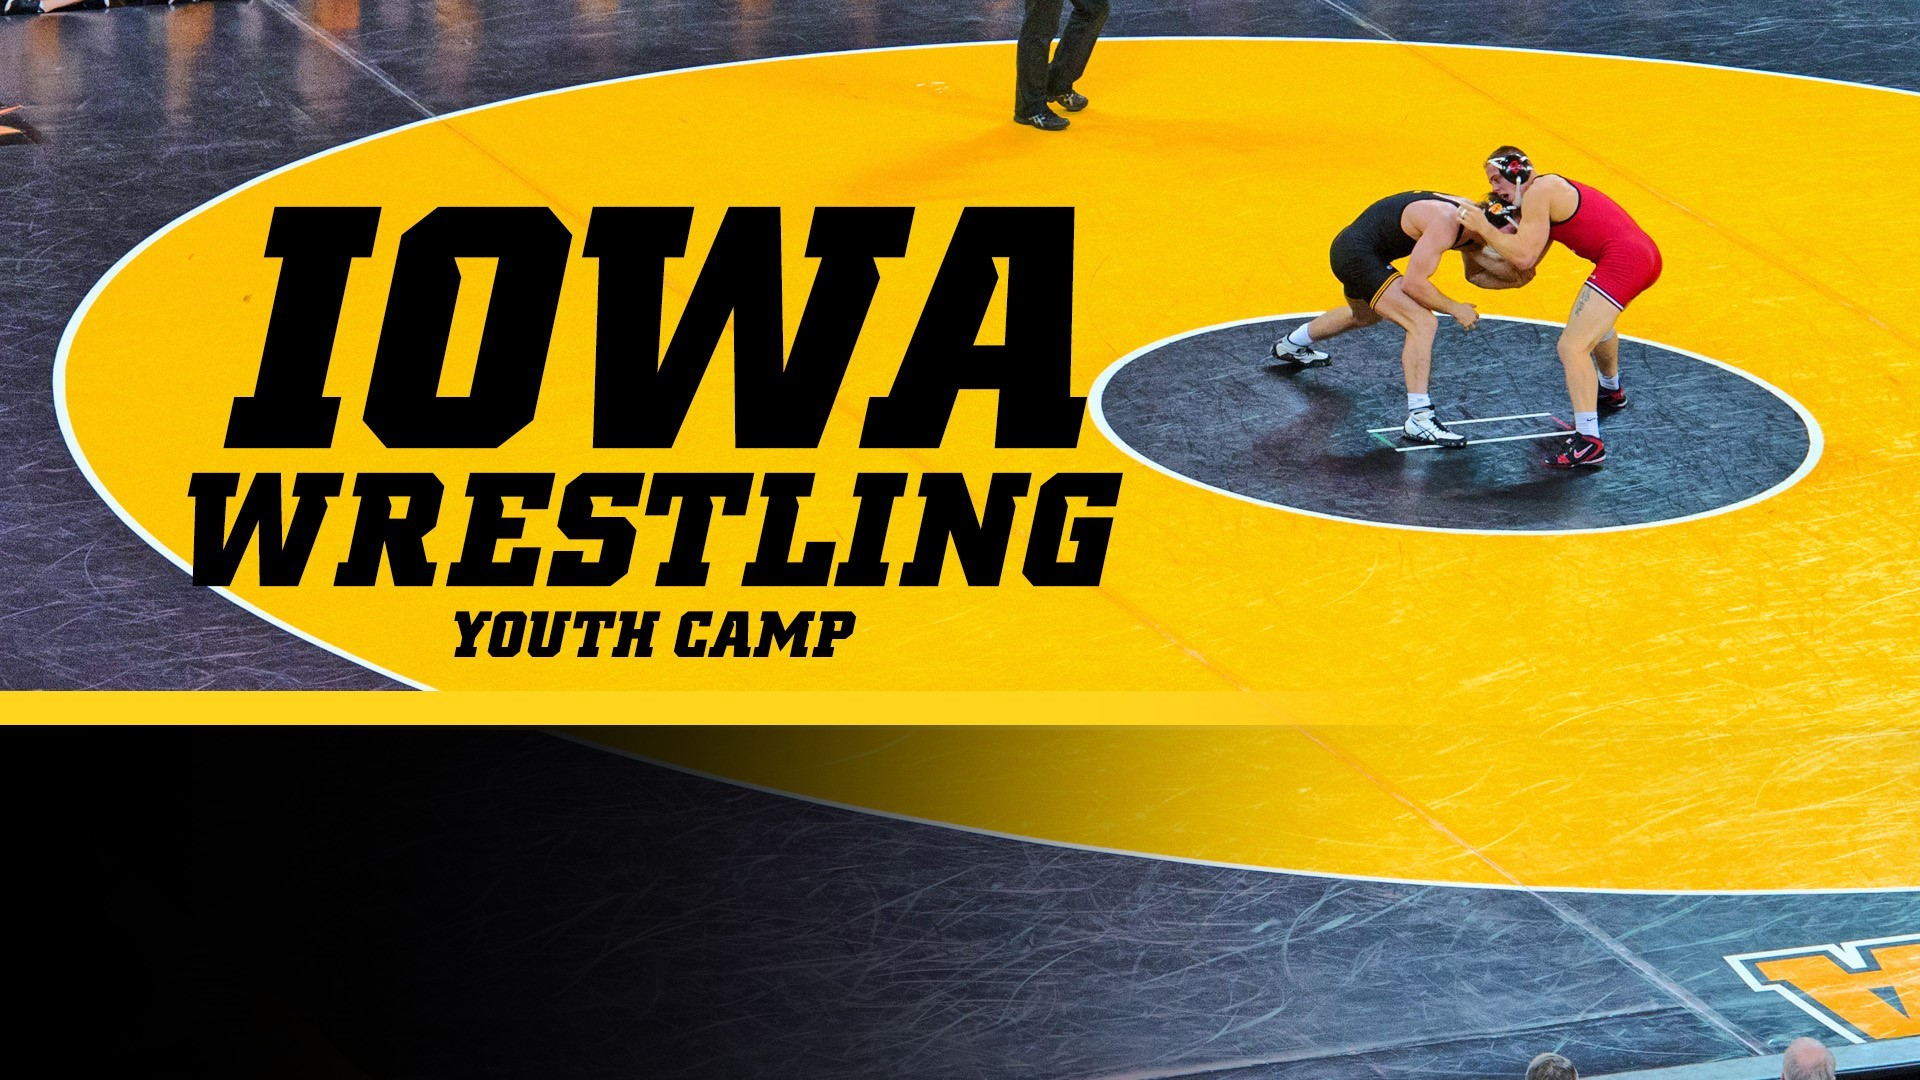 1920x1080 Registration Open for FREE Wrestling Youth Clinic